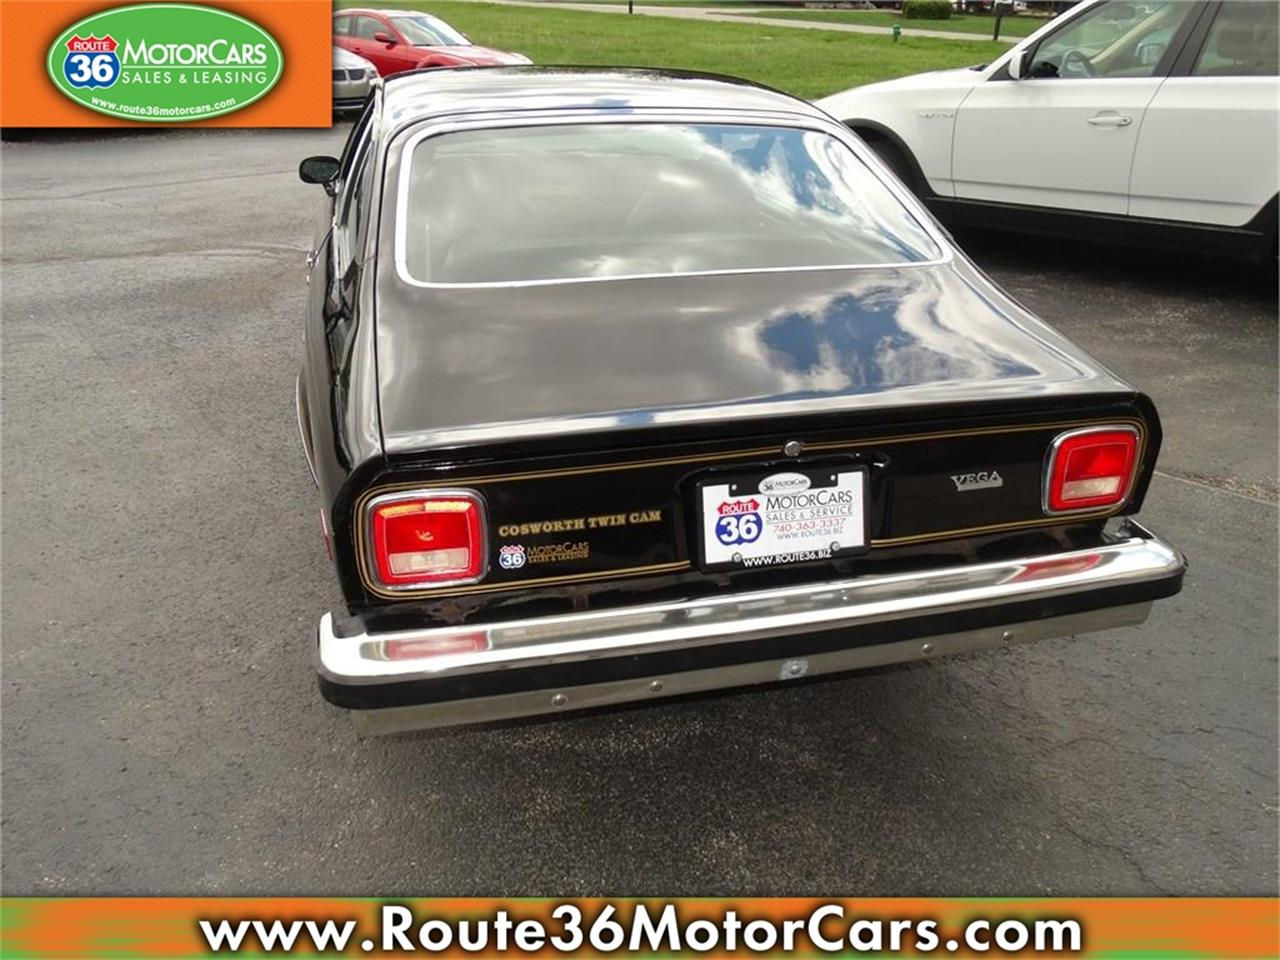 Large Picture of 1975 Chevrolet Vega located in Ohio - $10,475.00 - IKGX